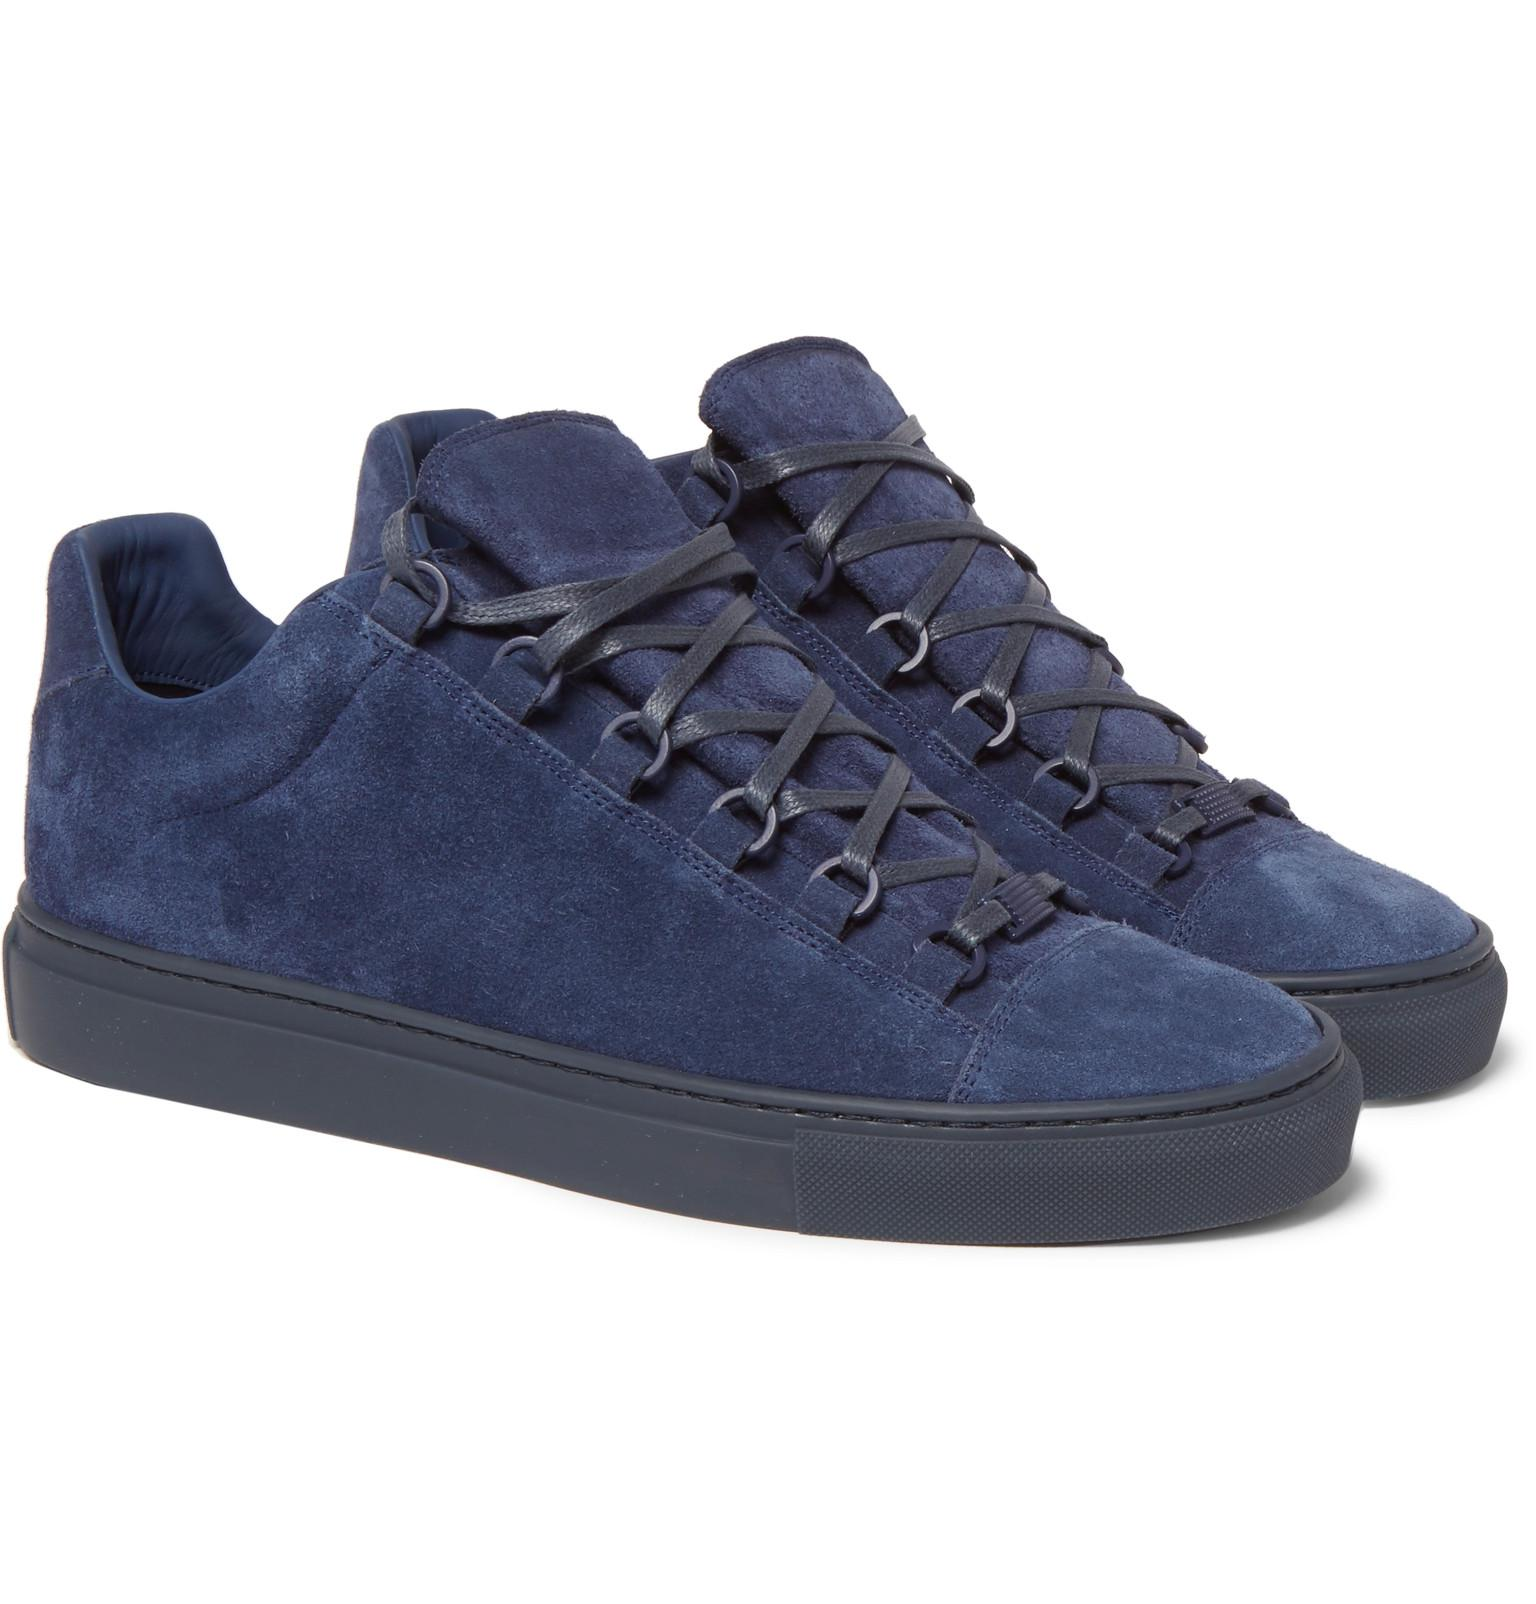 Lyst - Balenciaga Arena Suede Sneakers in Blue for Men ae3b662eb